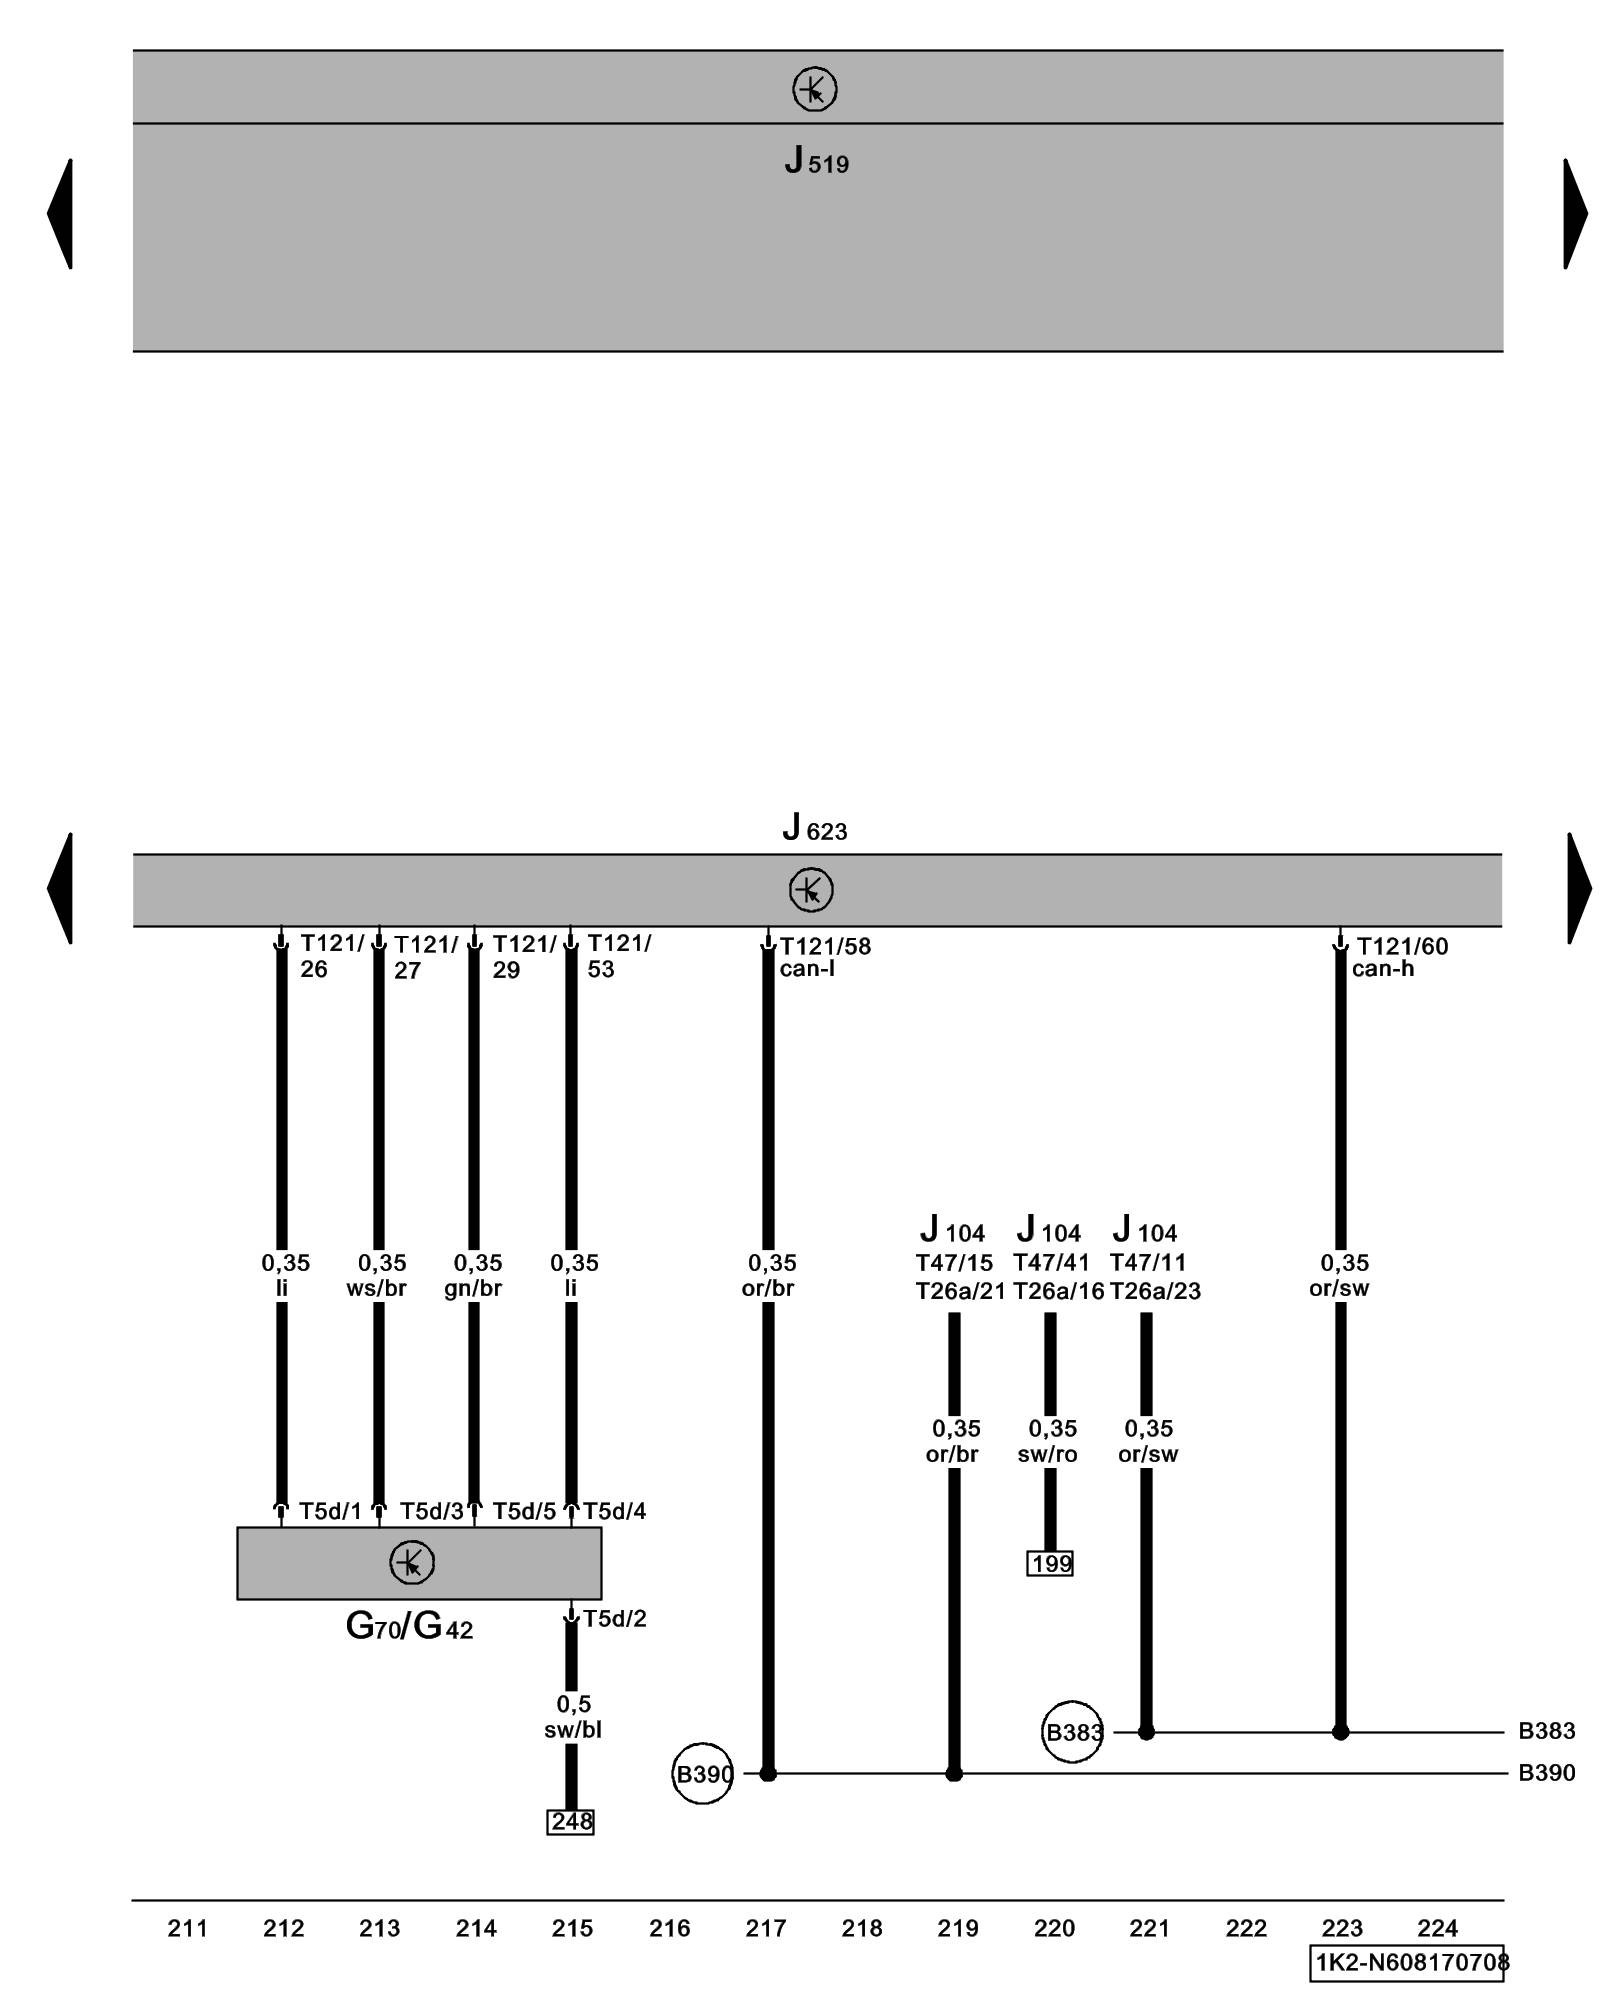 1996 vw jetta wiring diagrams ry 9363  fuse diagram for 2013 vw jetta fuse box diagram for 2013  fuse diagram for 2013 vw jetta fuse box